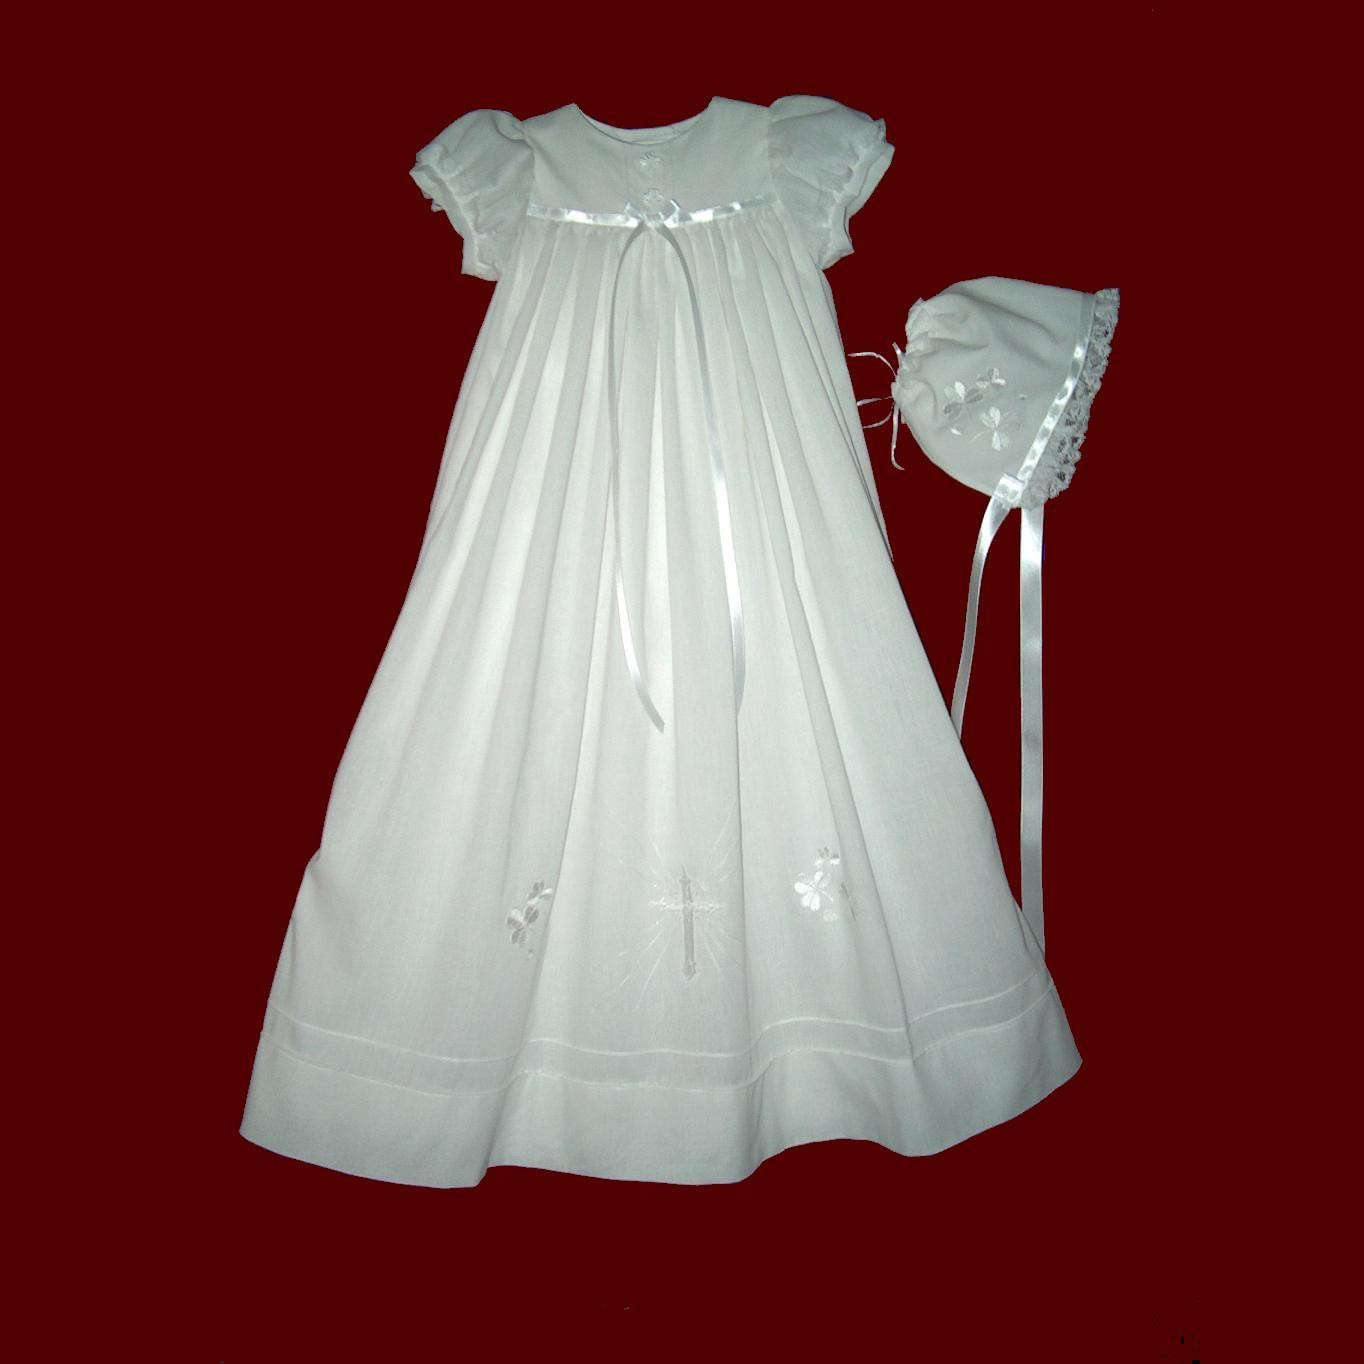 Linen Batiste Christening Gown with Embroidered Cross & Shamrocks ...